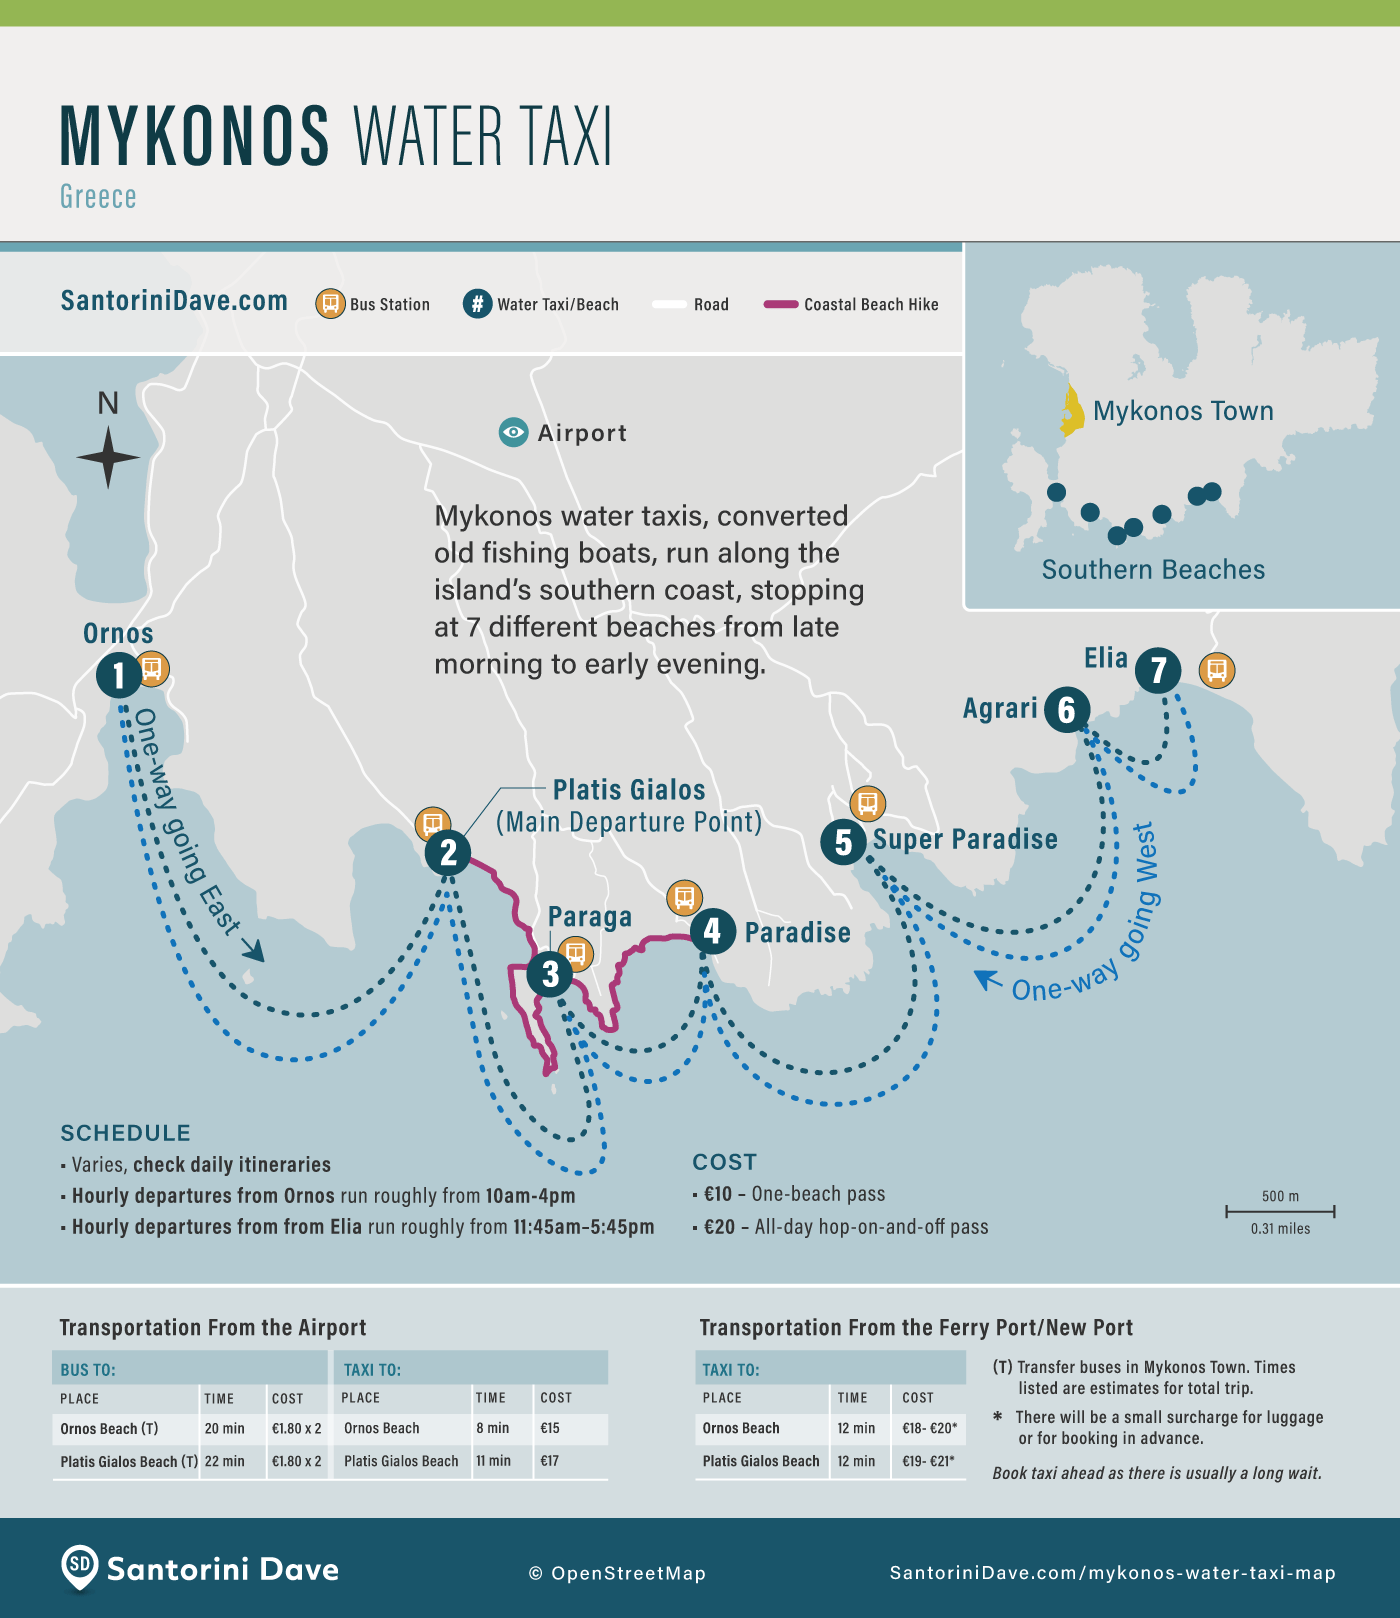 Map of the route and beaches served by water taxi service in Mykonos, Greece